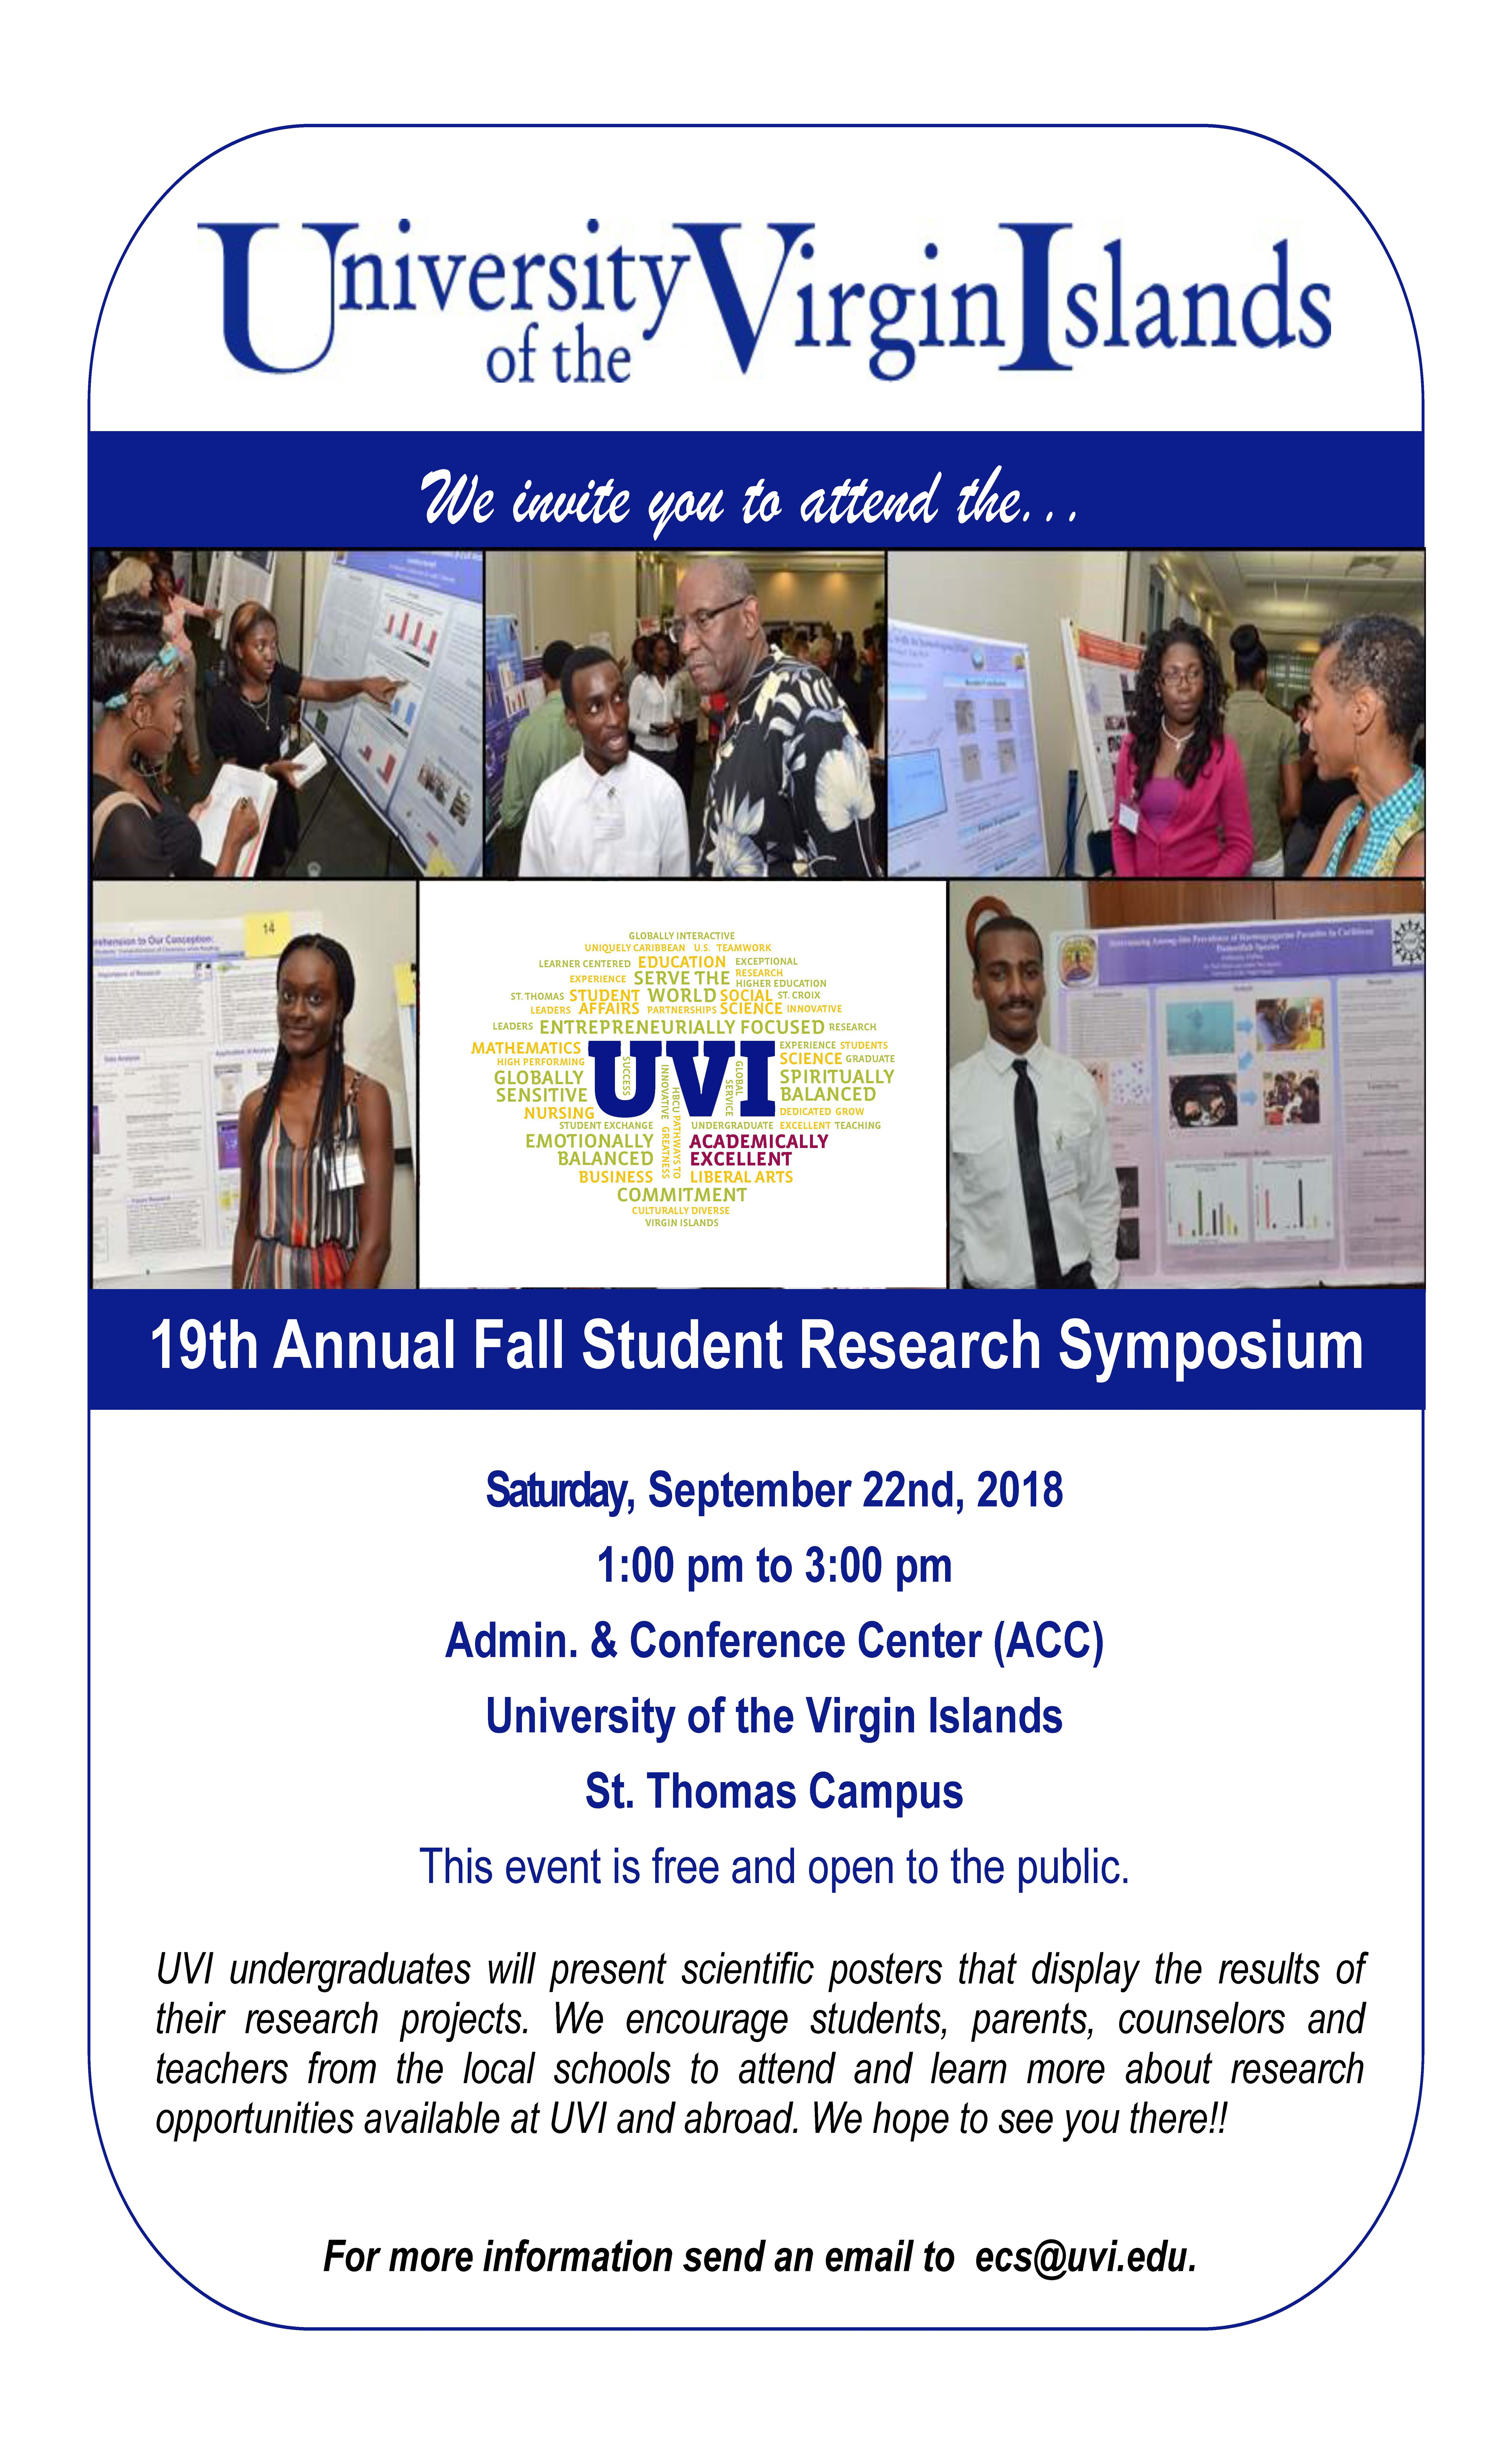 Annual Fall Student Research Symposium